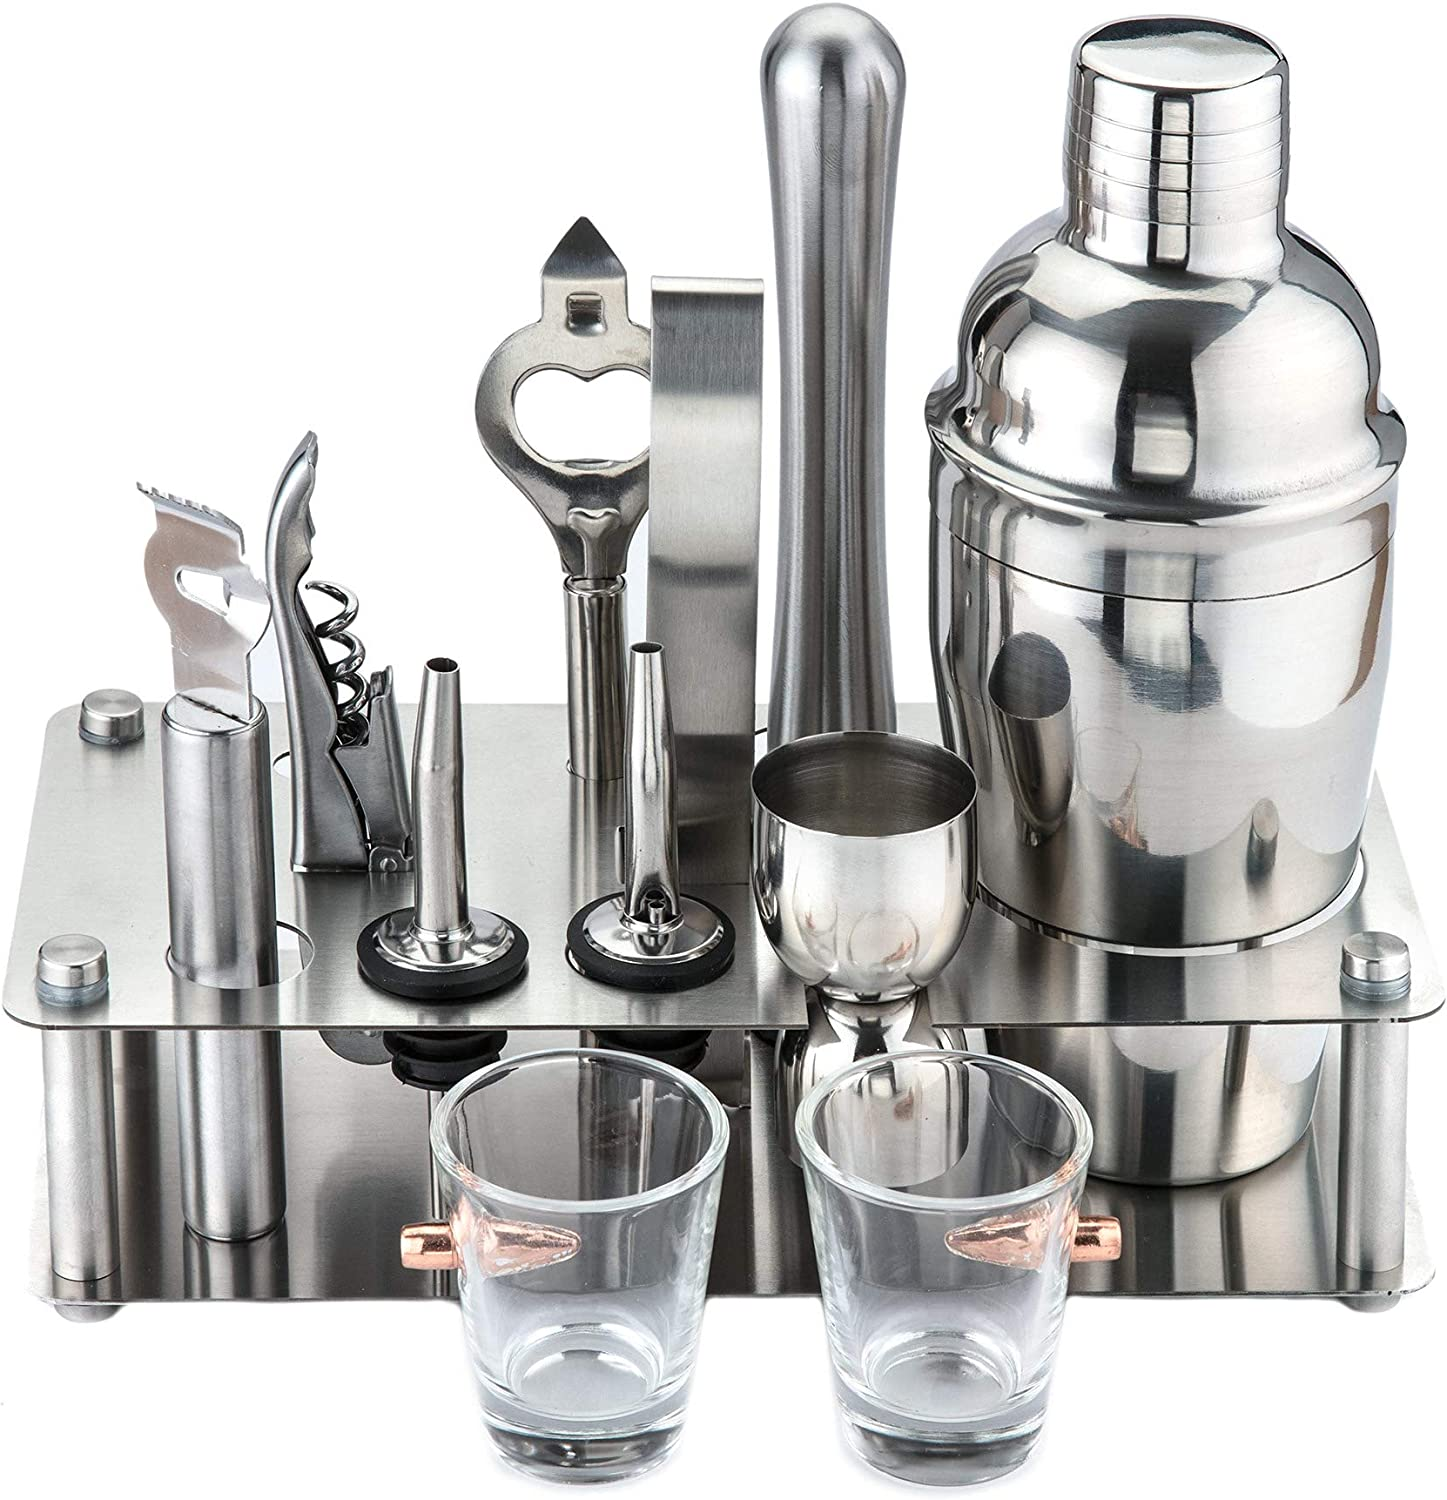 Bar set for the Home with FREE Bonus set of Bullet Shot Glasses   11 Piece Stainless Steel Cocktail Shaker Set is the Perfect Mixology Bartender Kit for a Home Bar Set